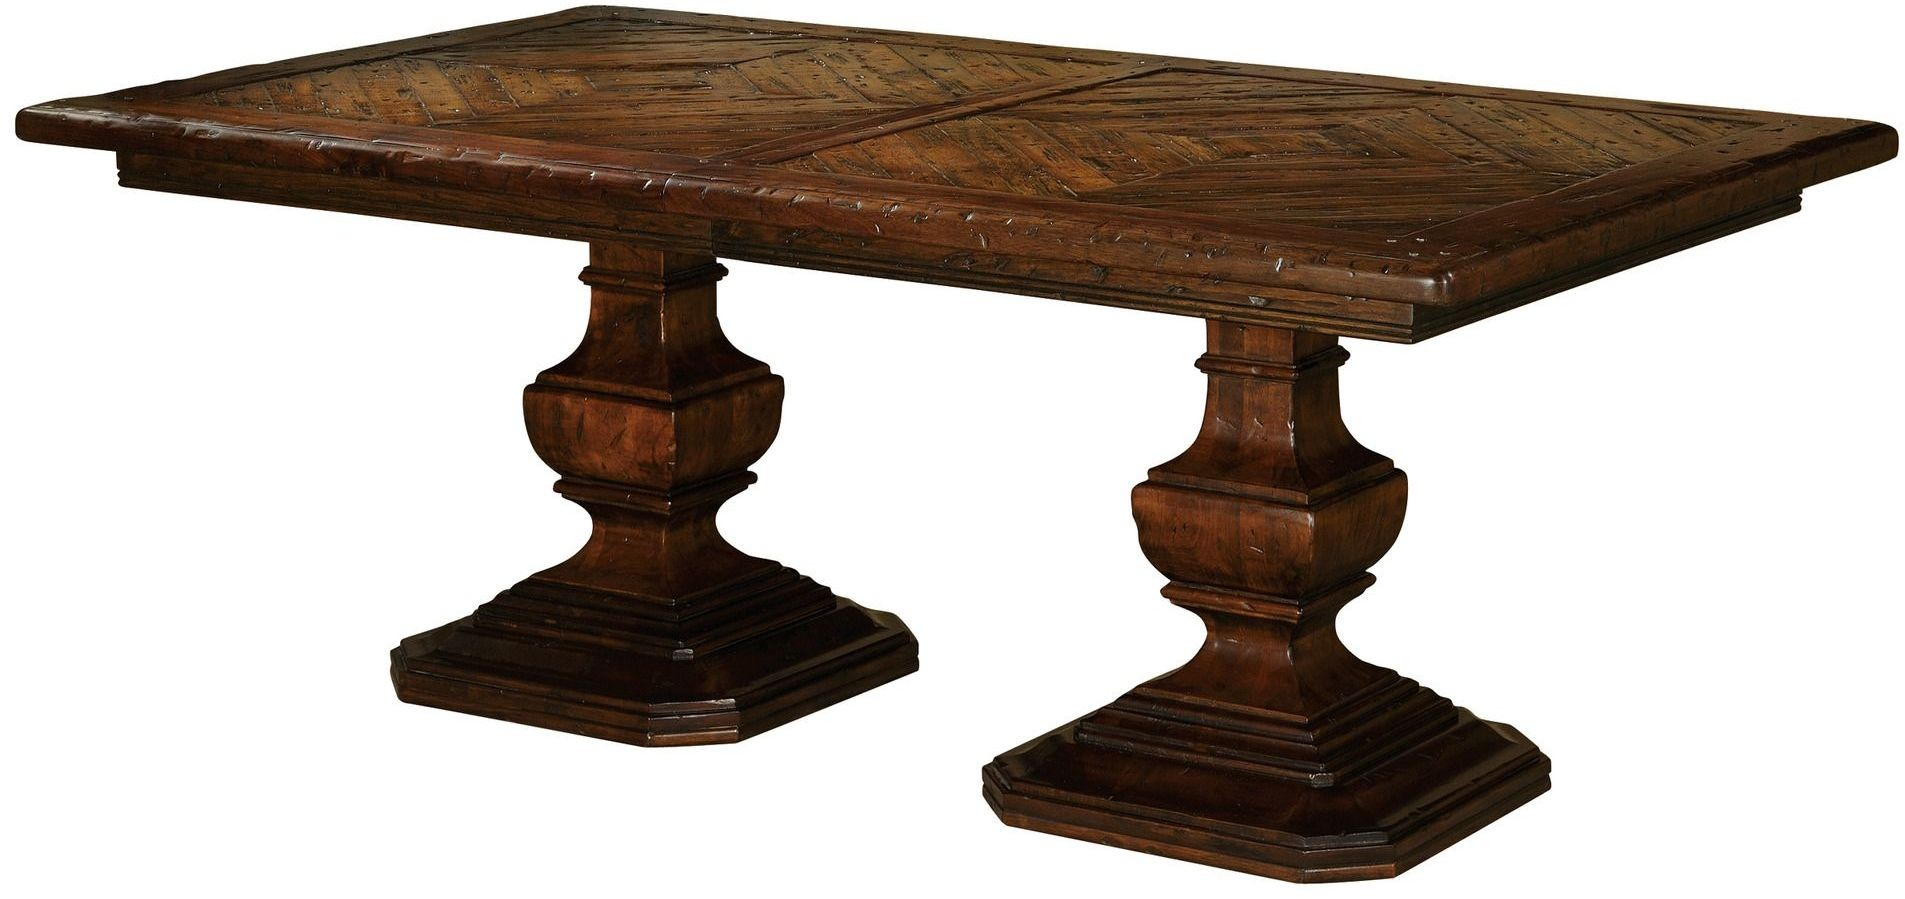 Rue de bac cognac extendable pedestal dining table from for Pedestal dining table